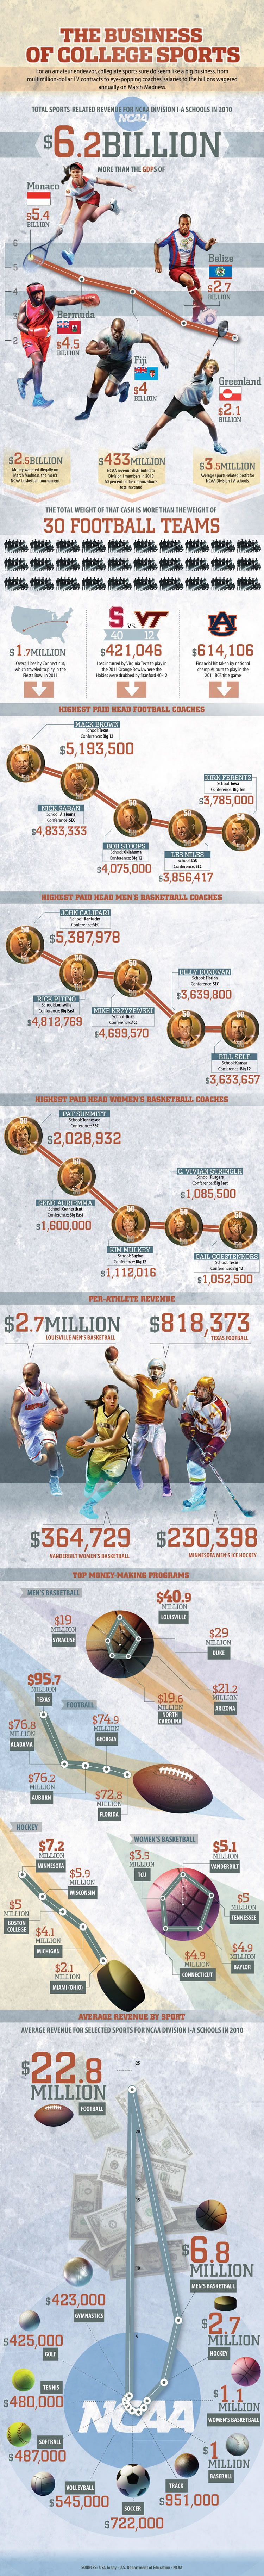 Infographic The Business of College Sports Sports